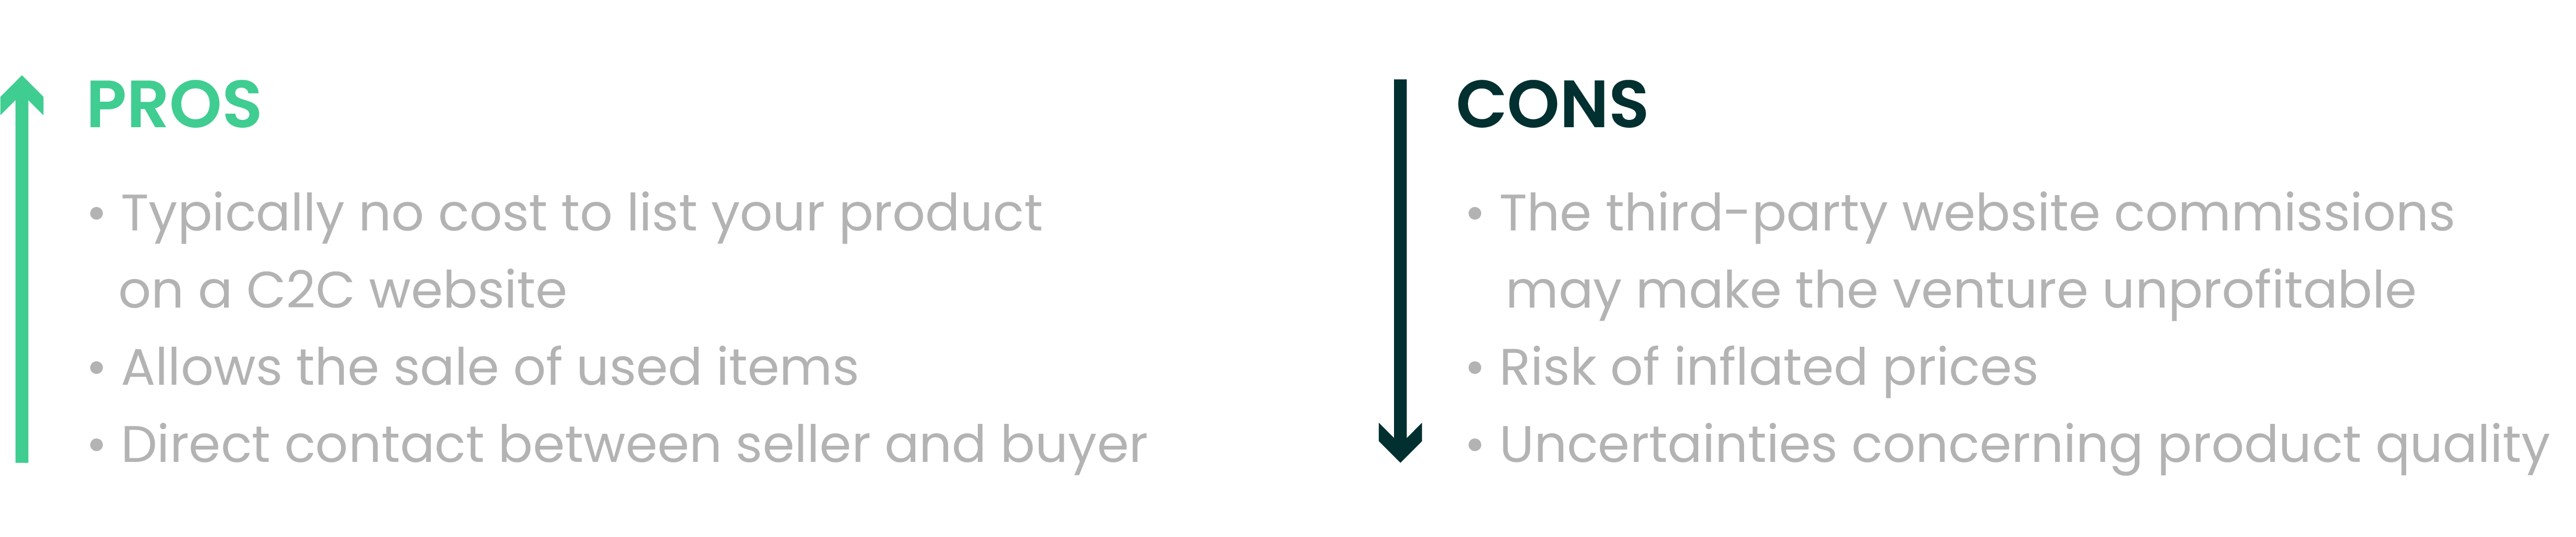 Consumer-to-consumer business model pros and cons banner